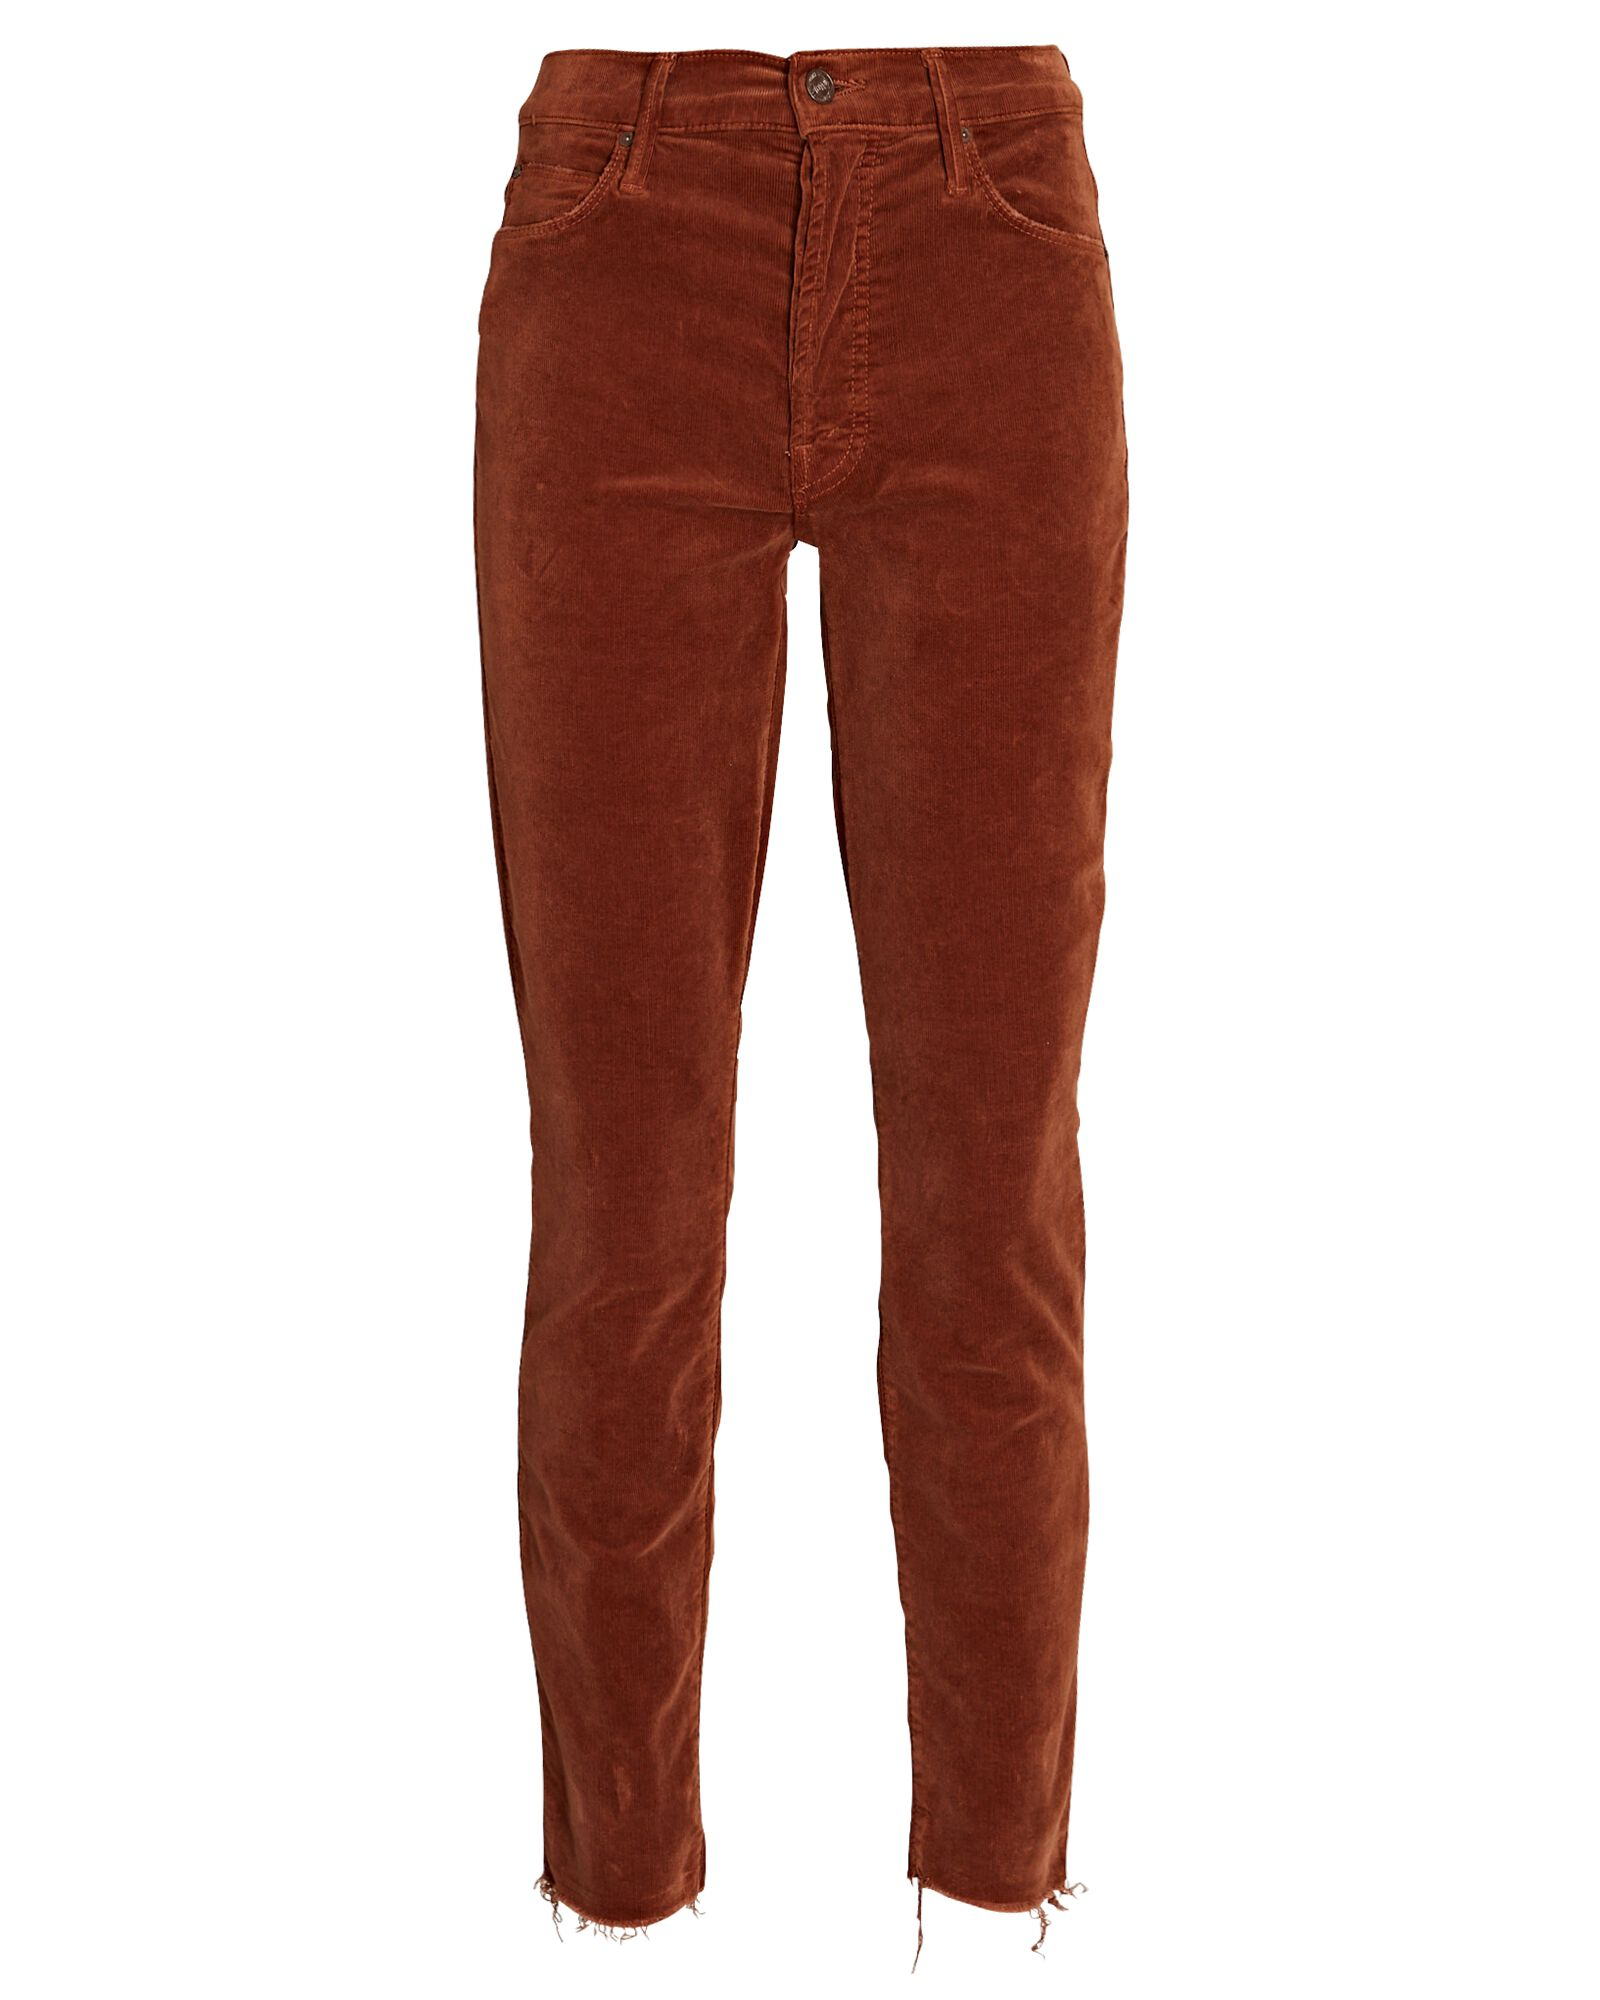 The Stunner Ankle Fray Corduroy Jeans, MONK'S ROBE, hi-res